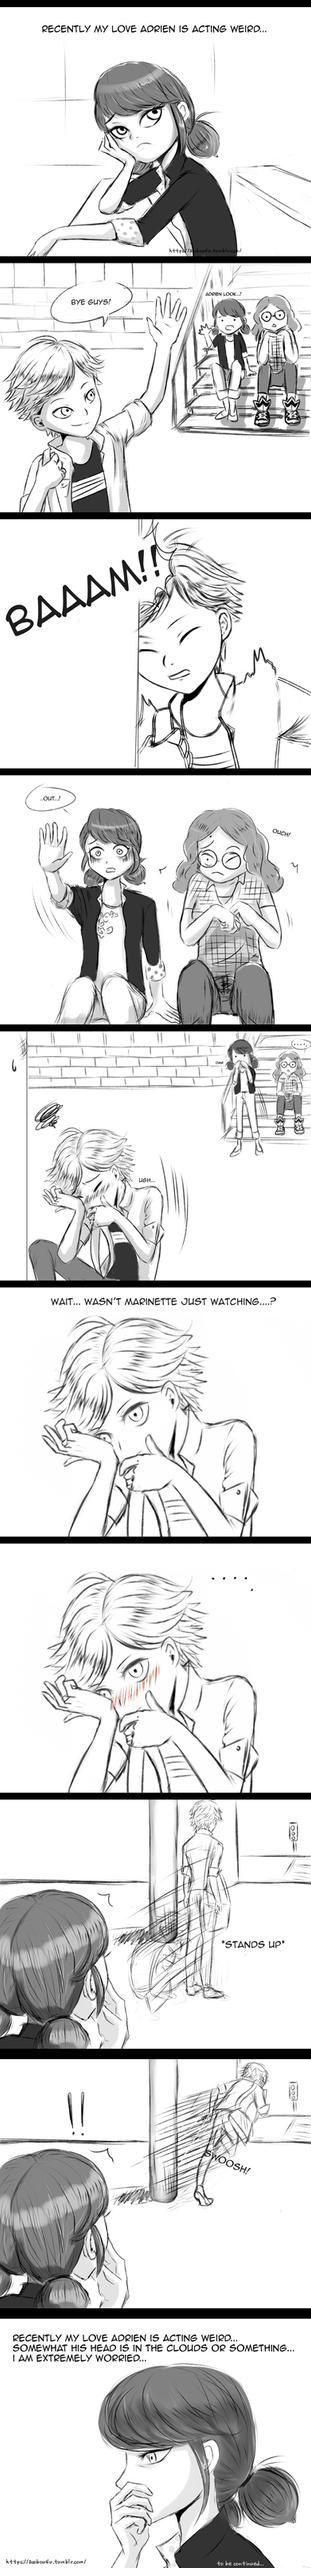 Whats going on Adrien? (Part1) by Asobou4Ulquiorra